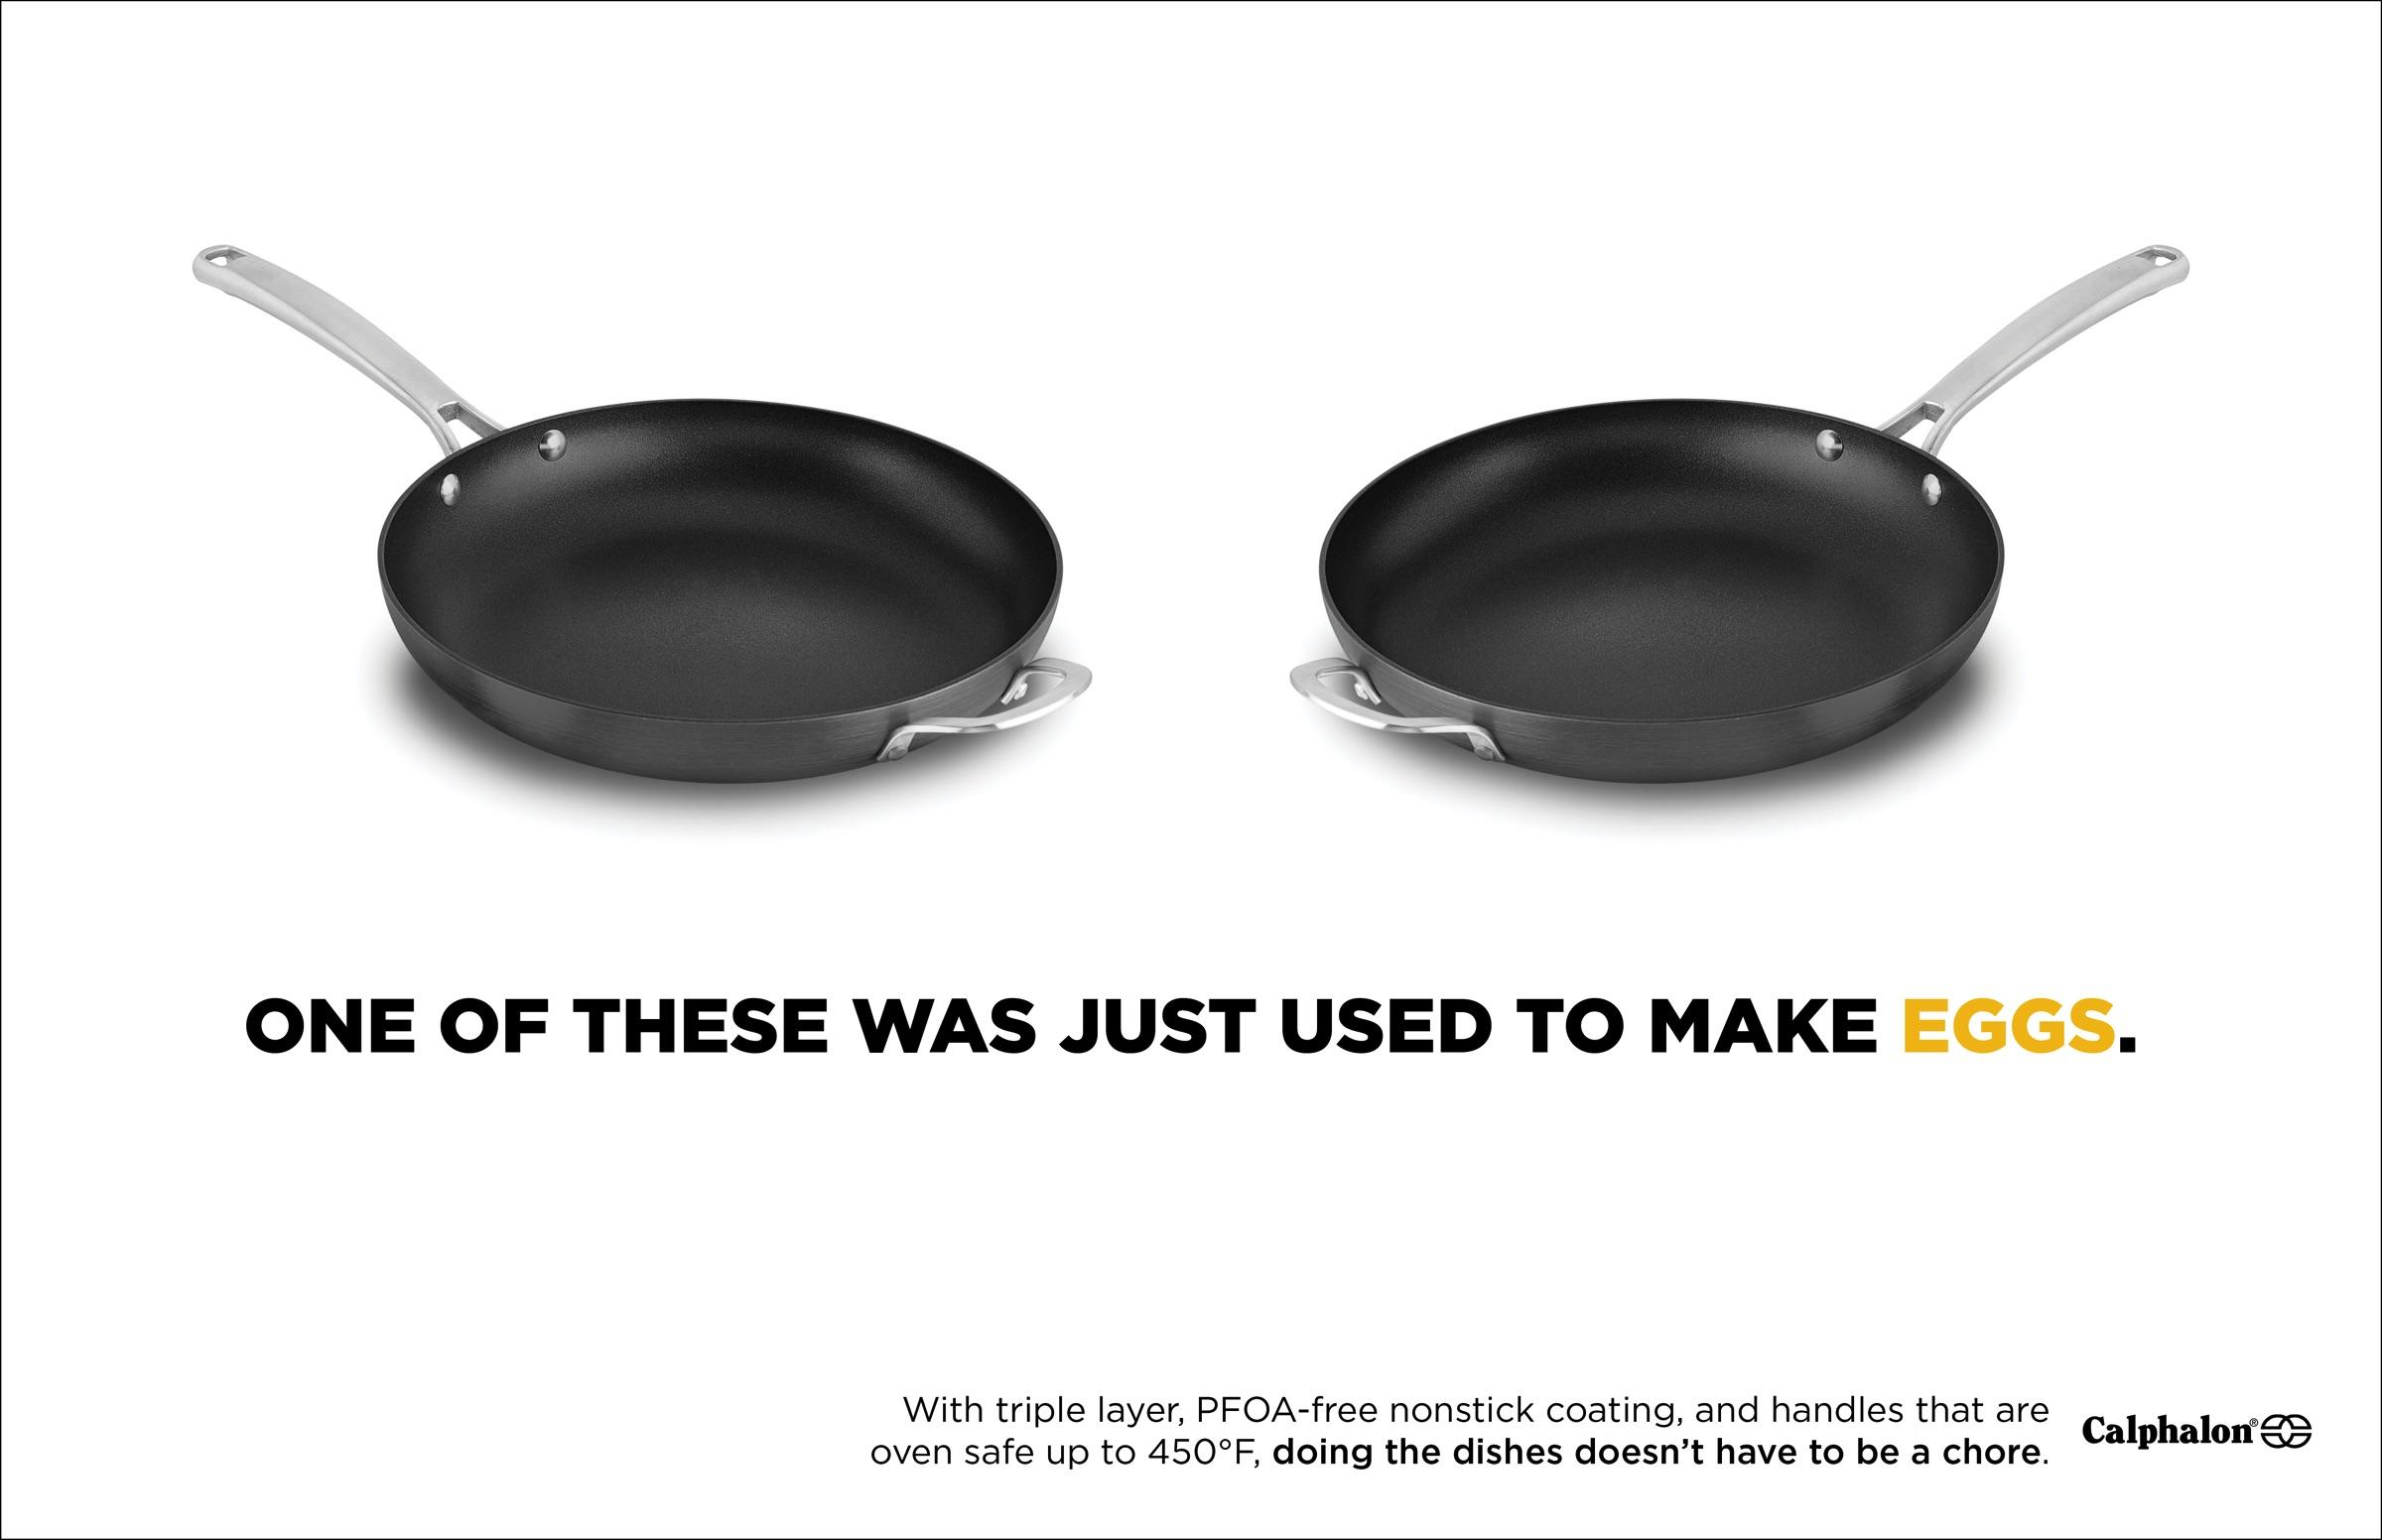 Calphalon Print Ad - Can't Tell The Difference - Eggs